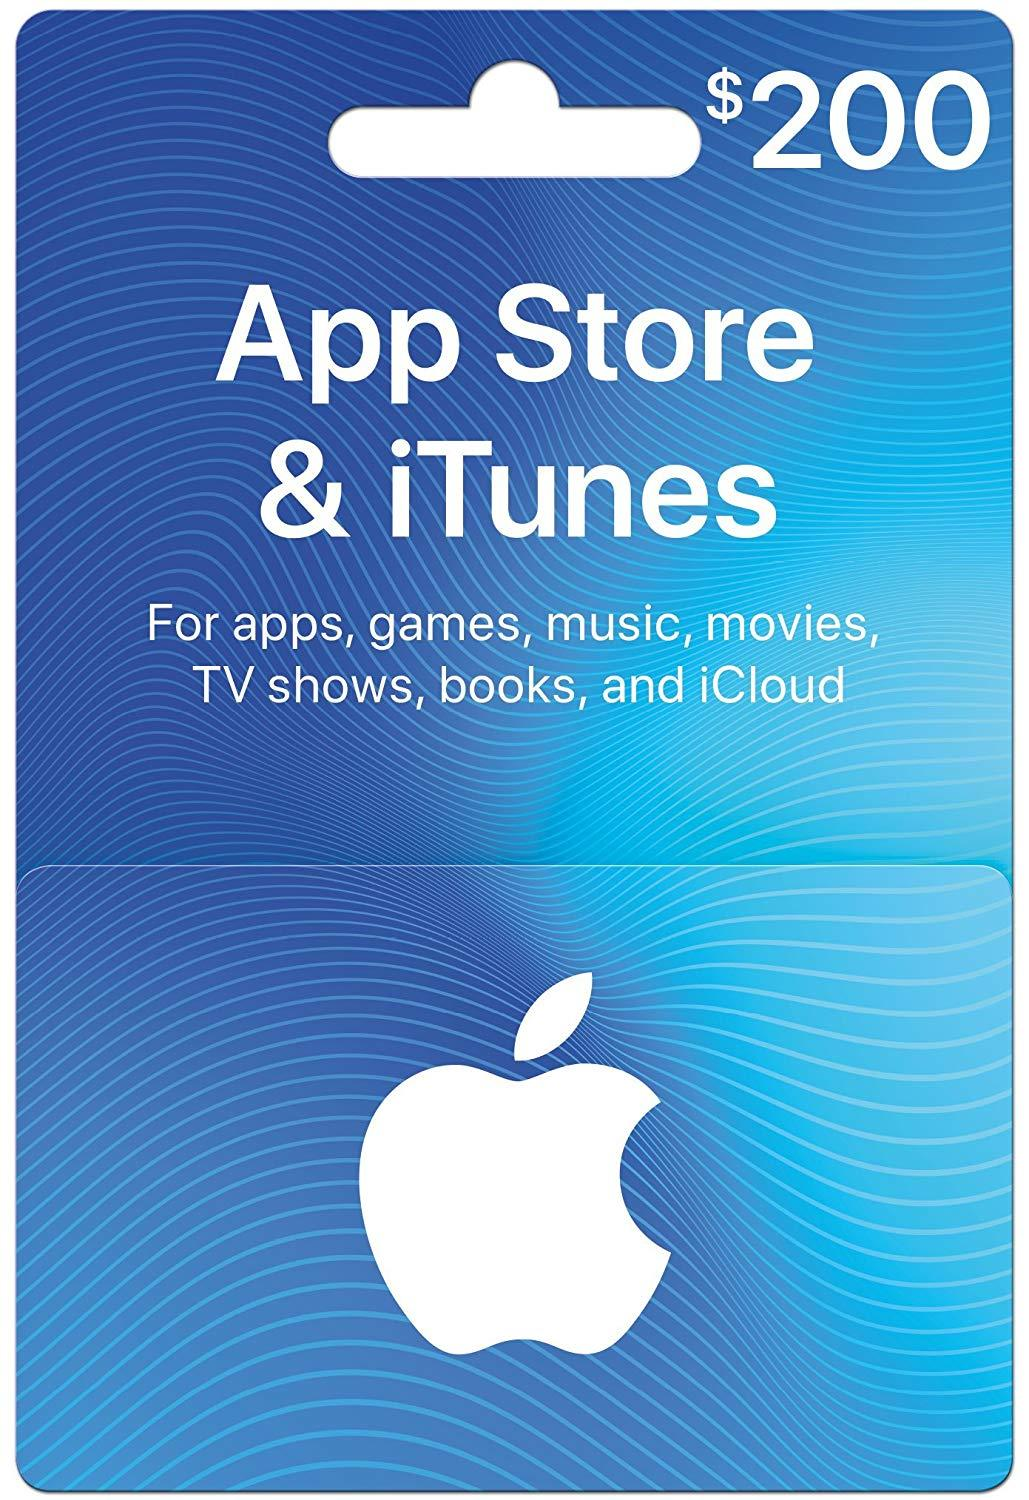 App Store & iTunes 200 USD GIFT CARD US